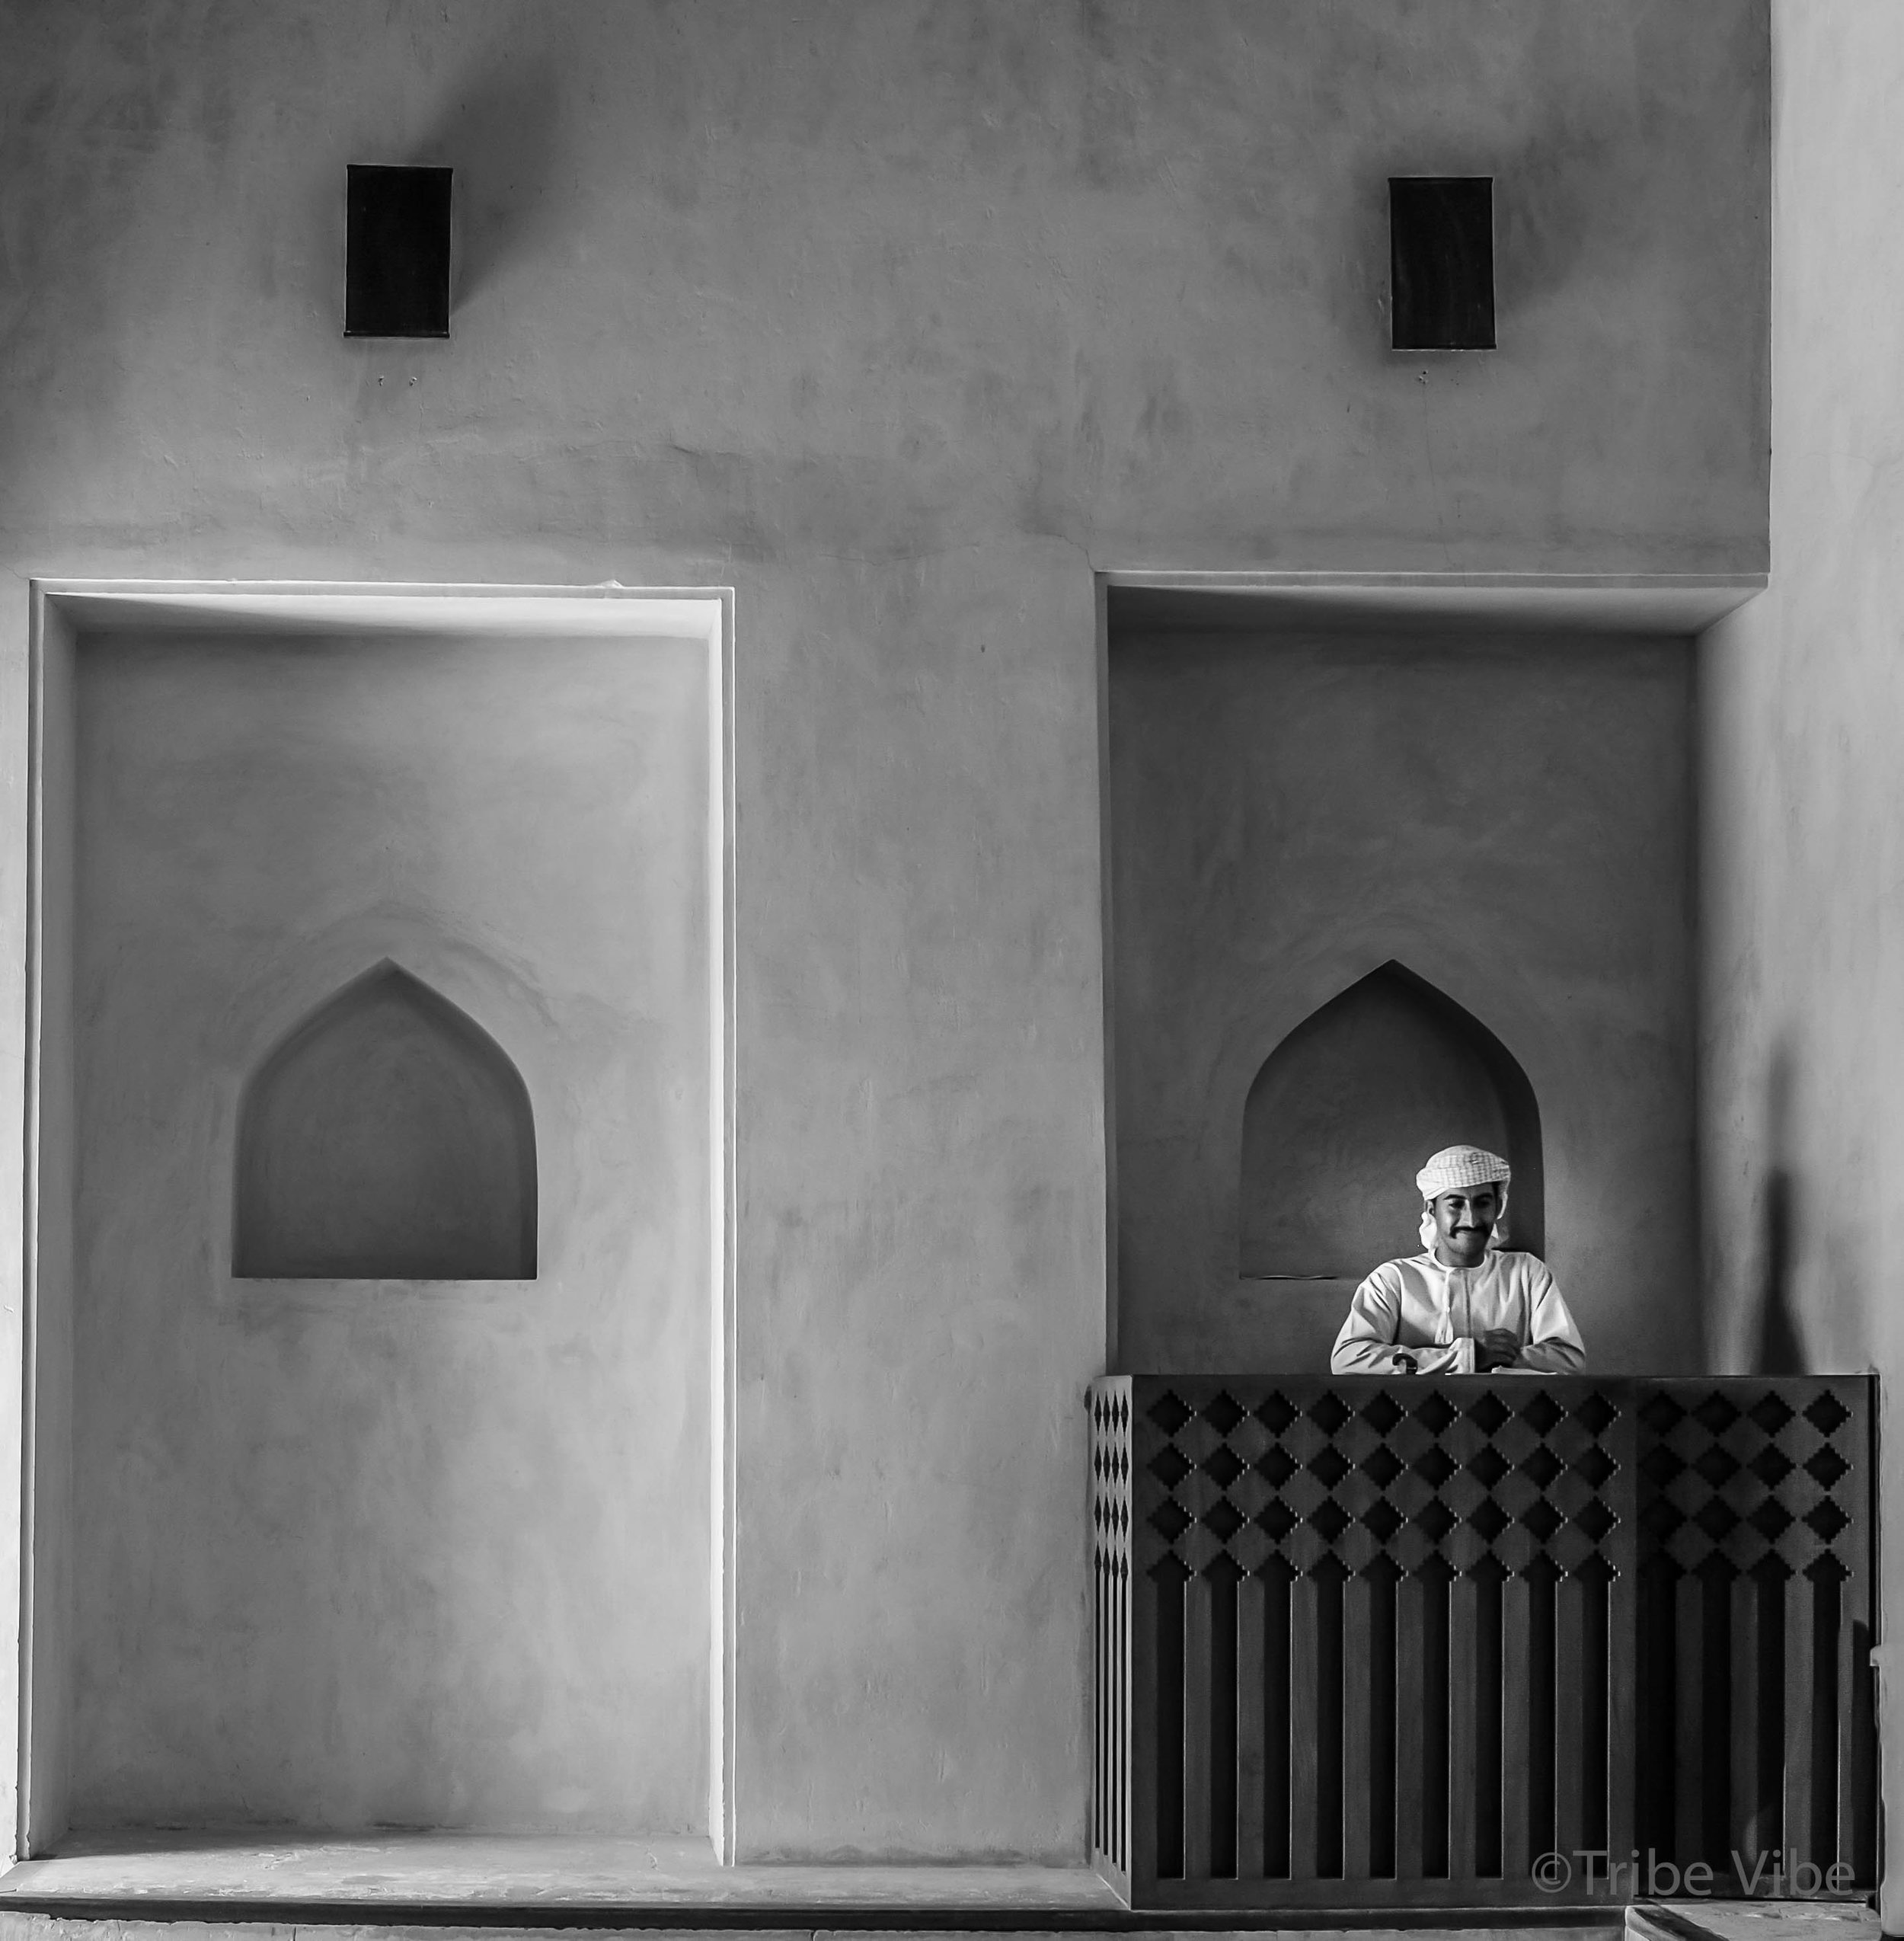 Omani man at Bahla Fort, Oman